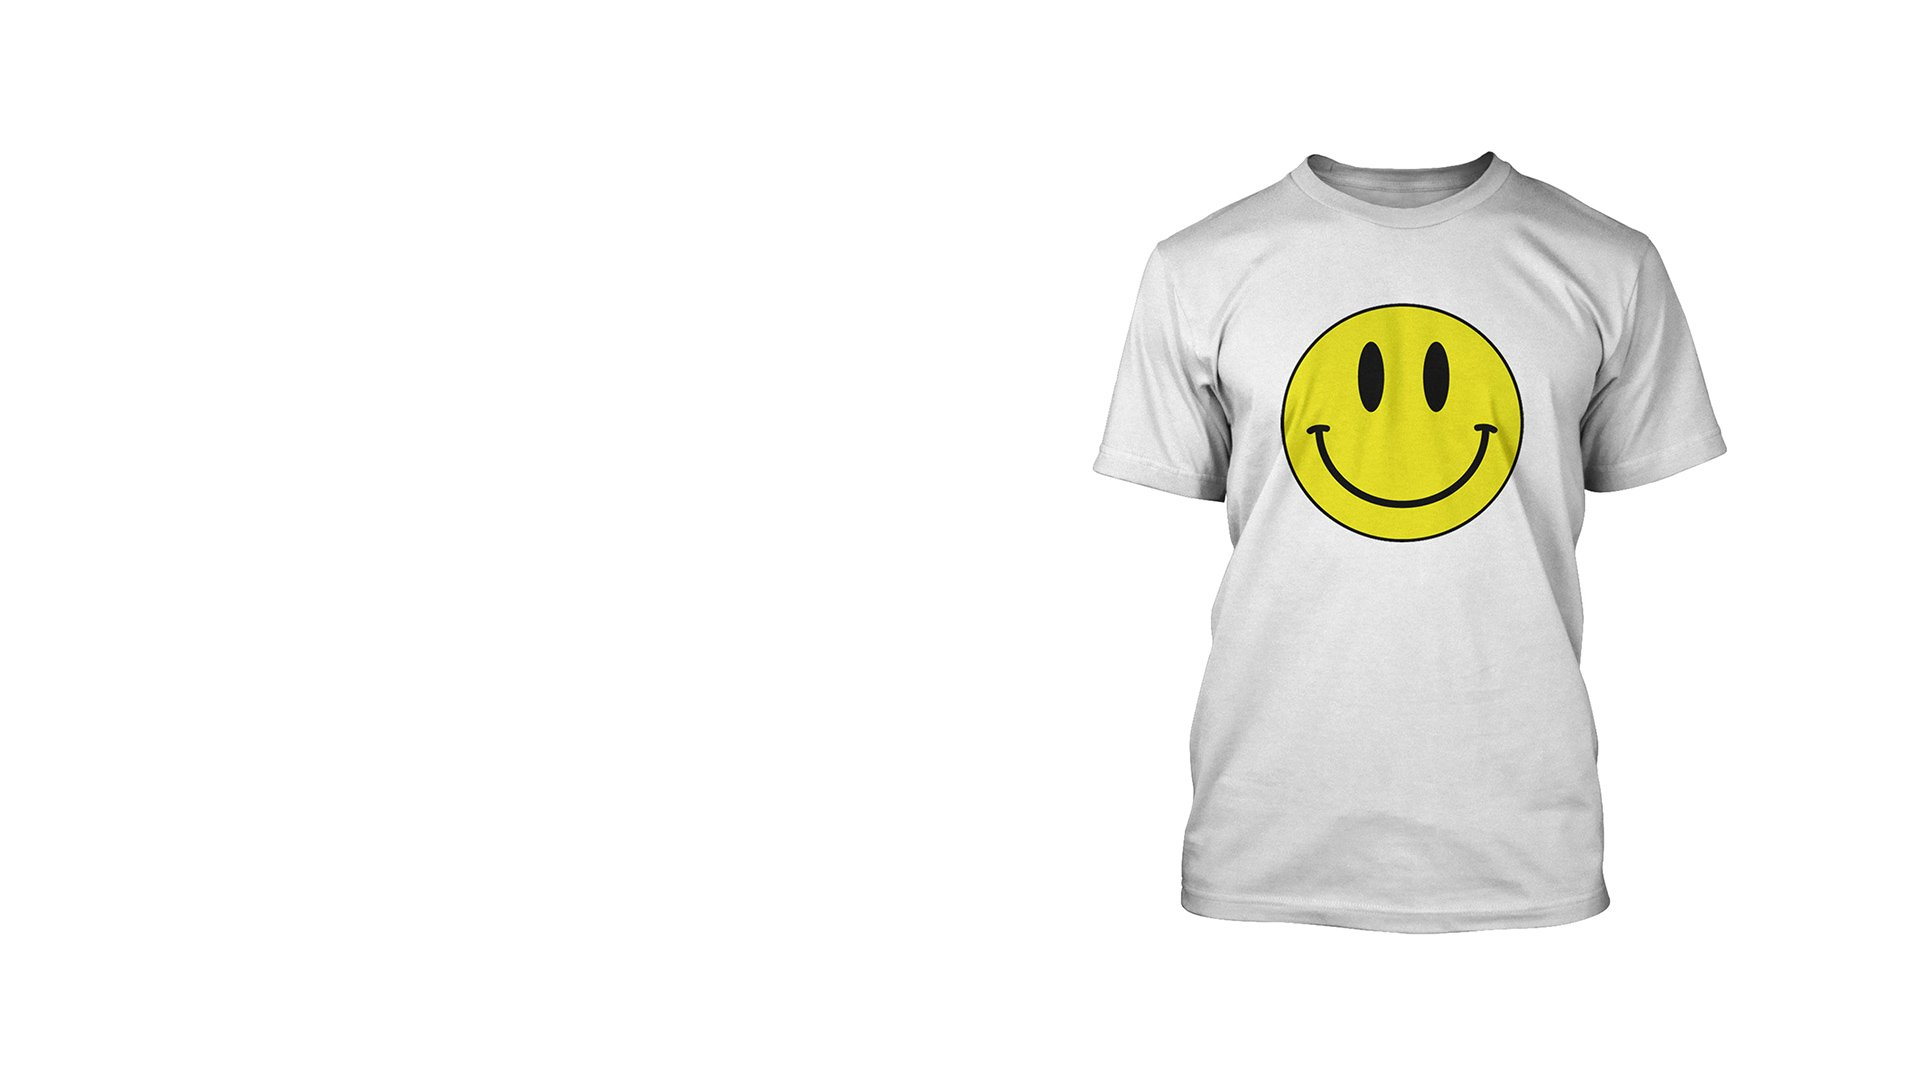 smiley face t shirt. Black Bedroom Furniture Sets. Home Design Ideas